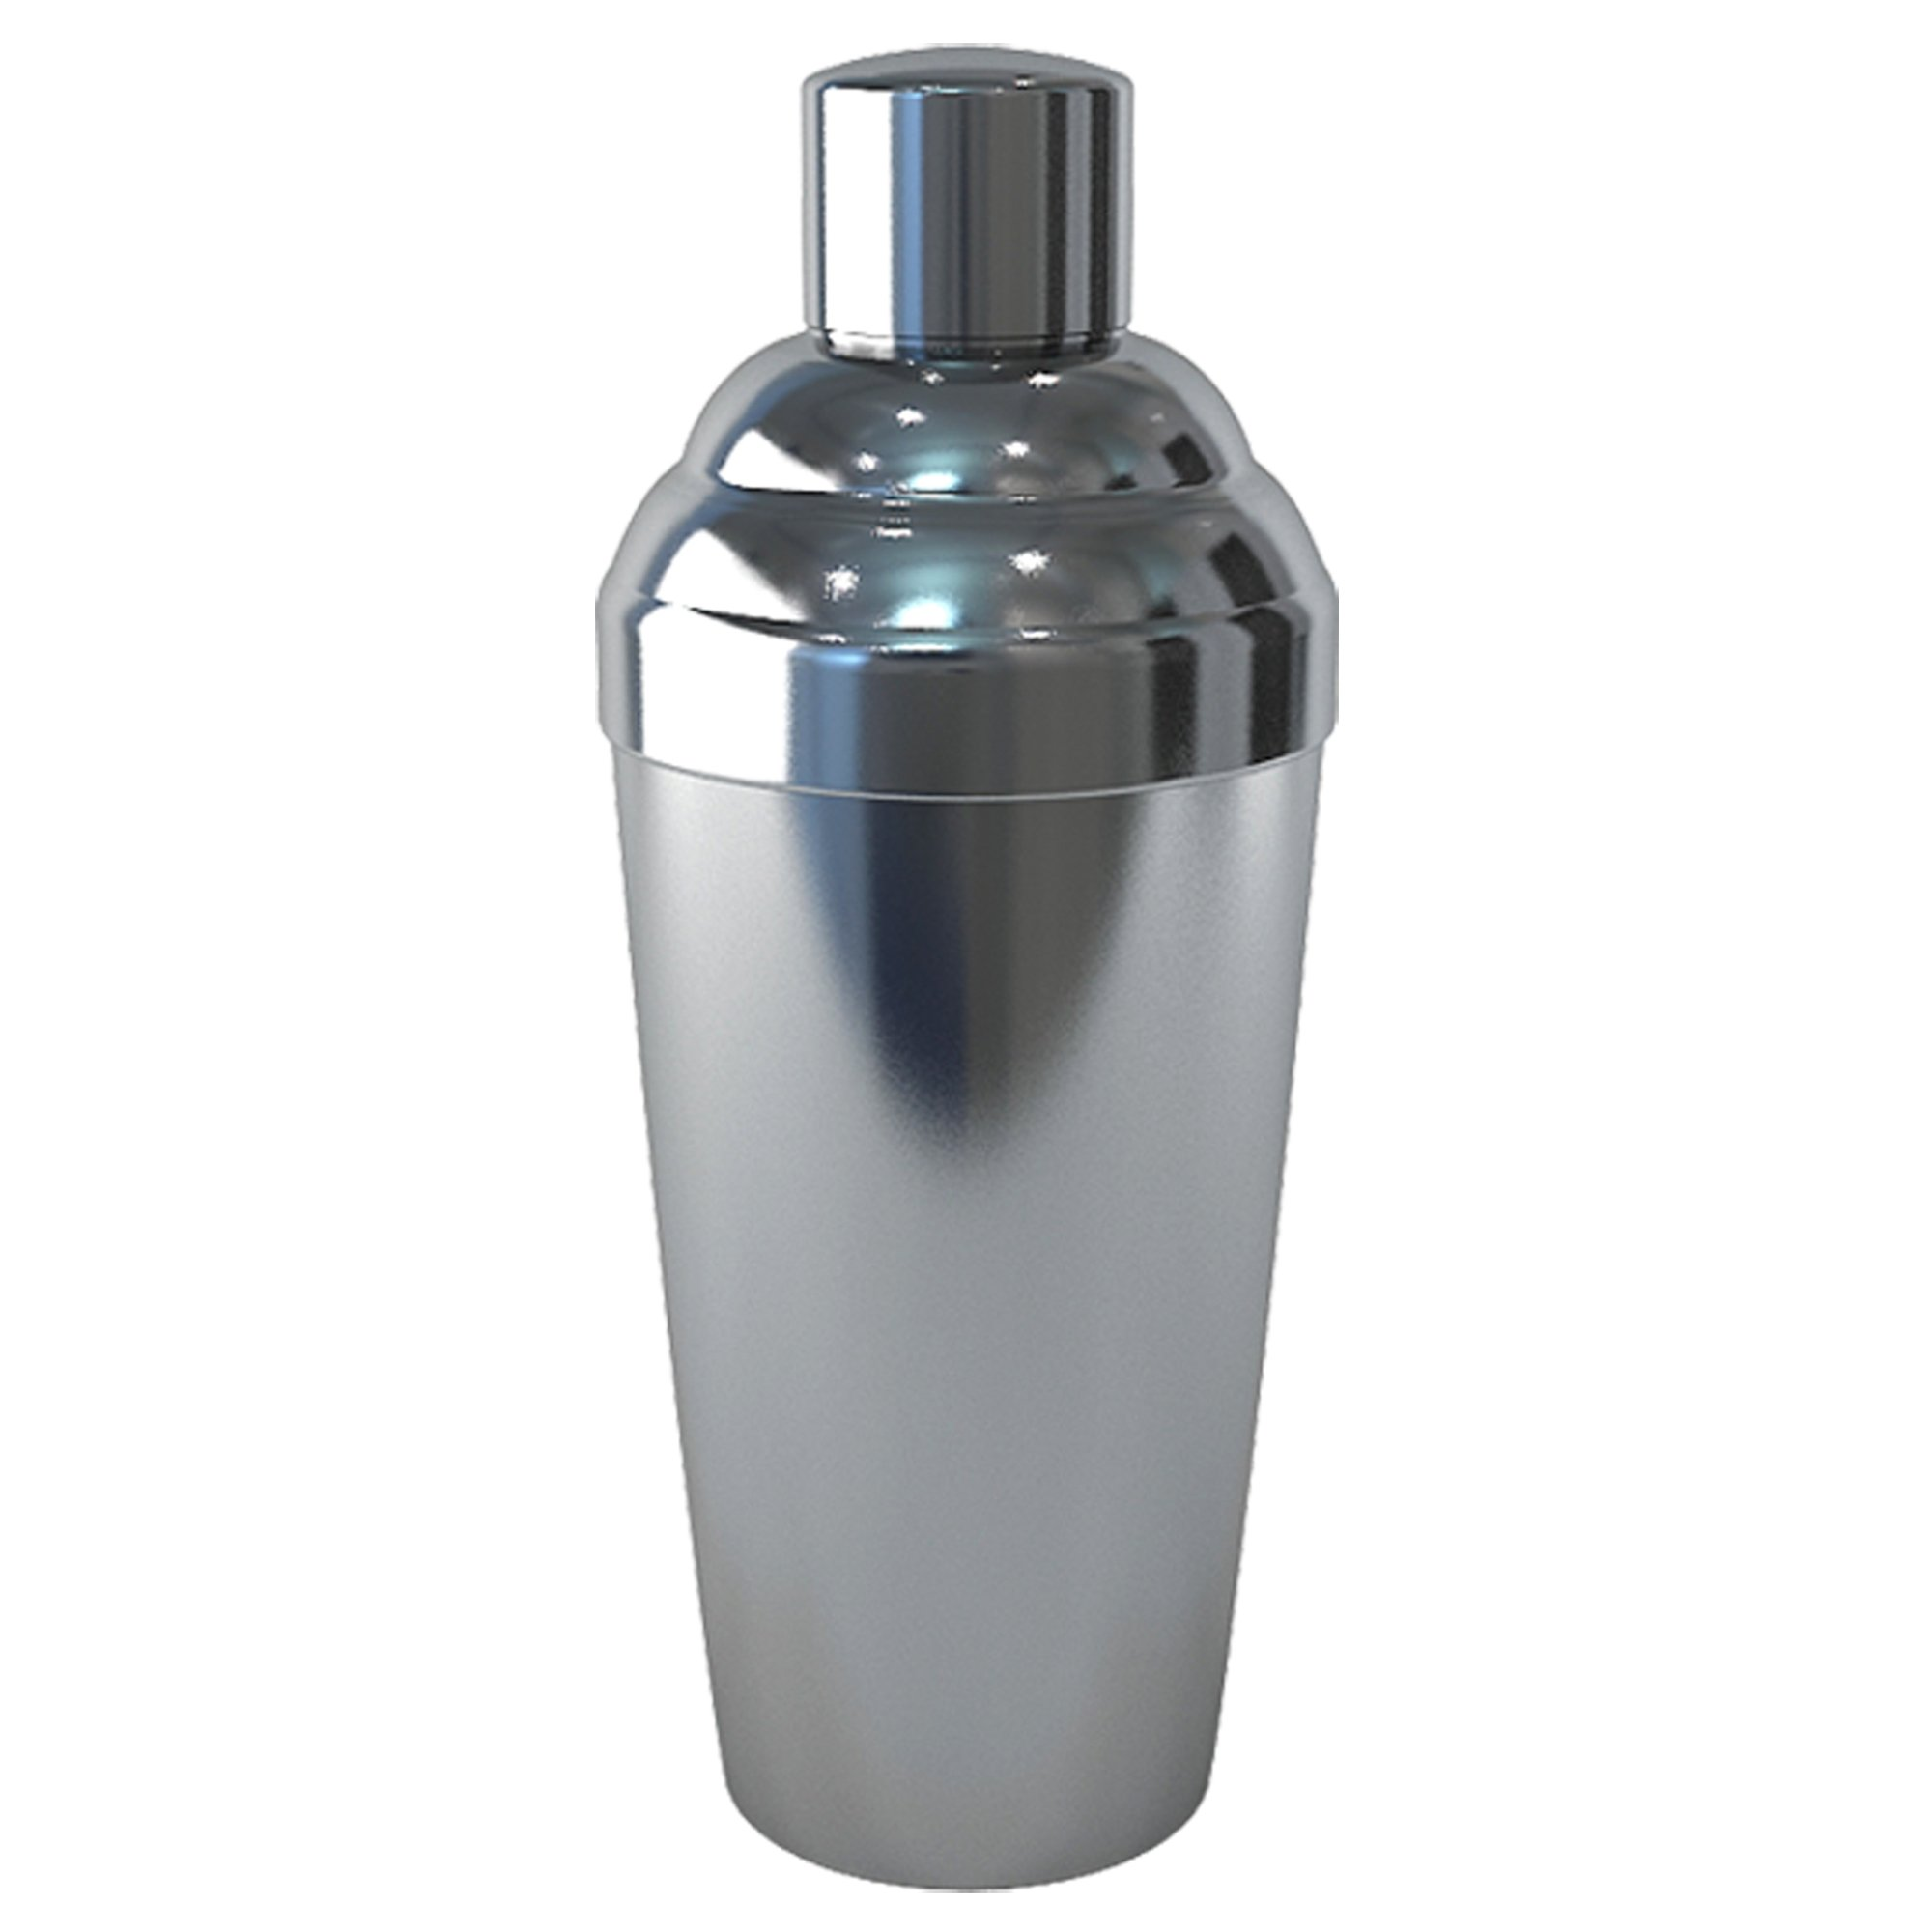 nu steel TG-CS-5B Stainless Steel Big One Cocktail Shaker 110 oz Shiny